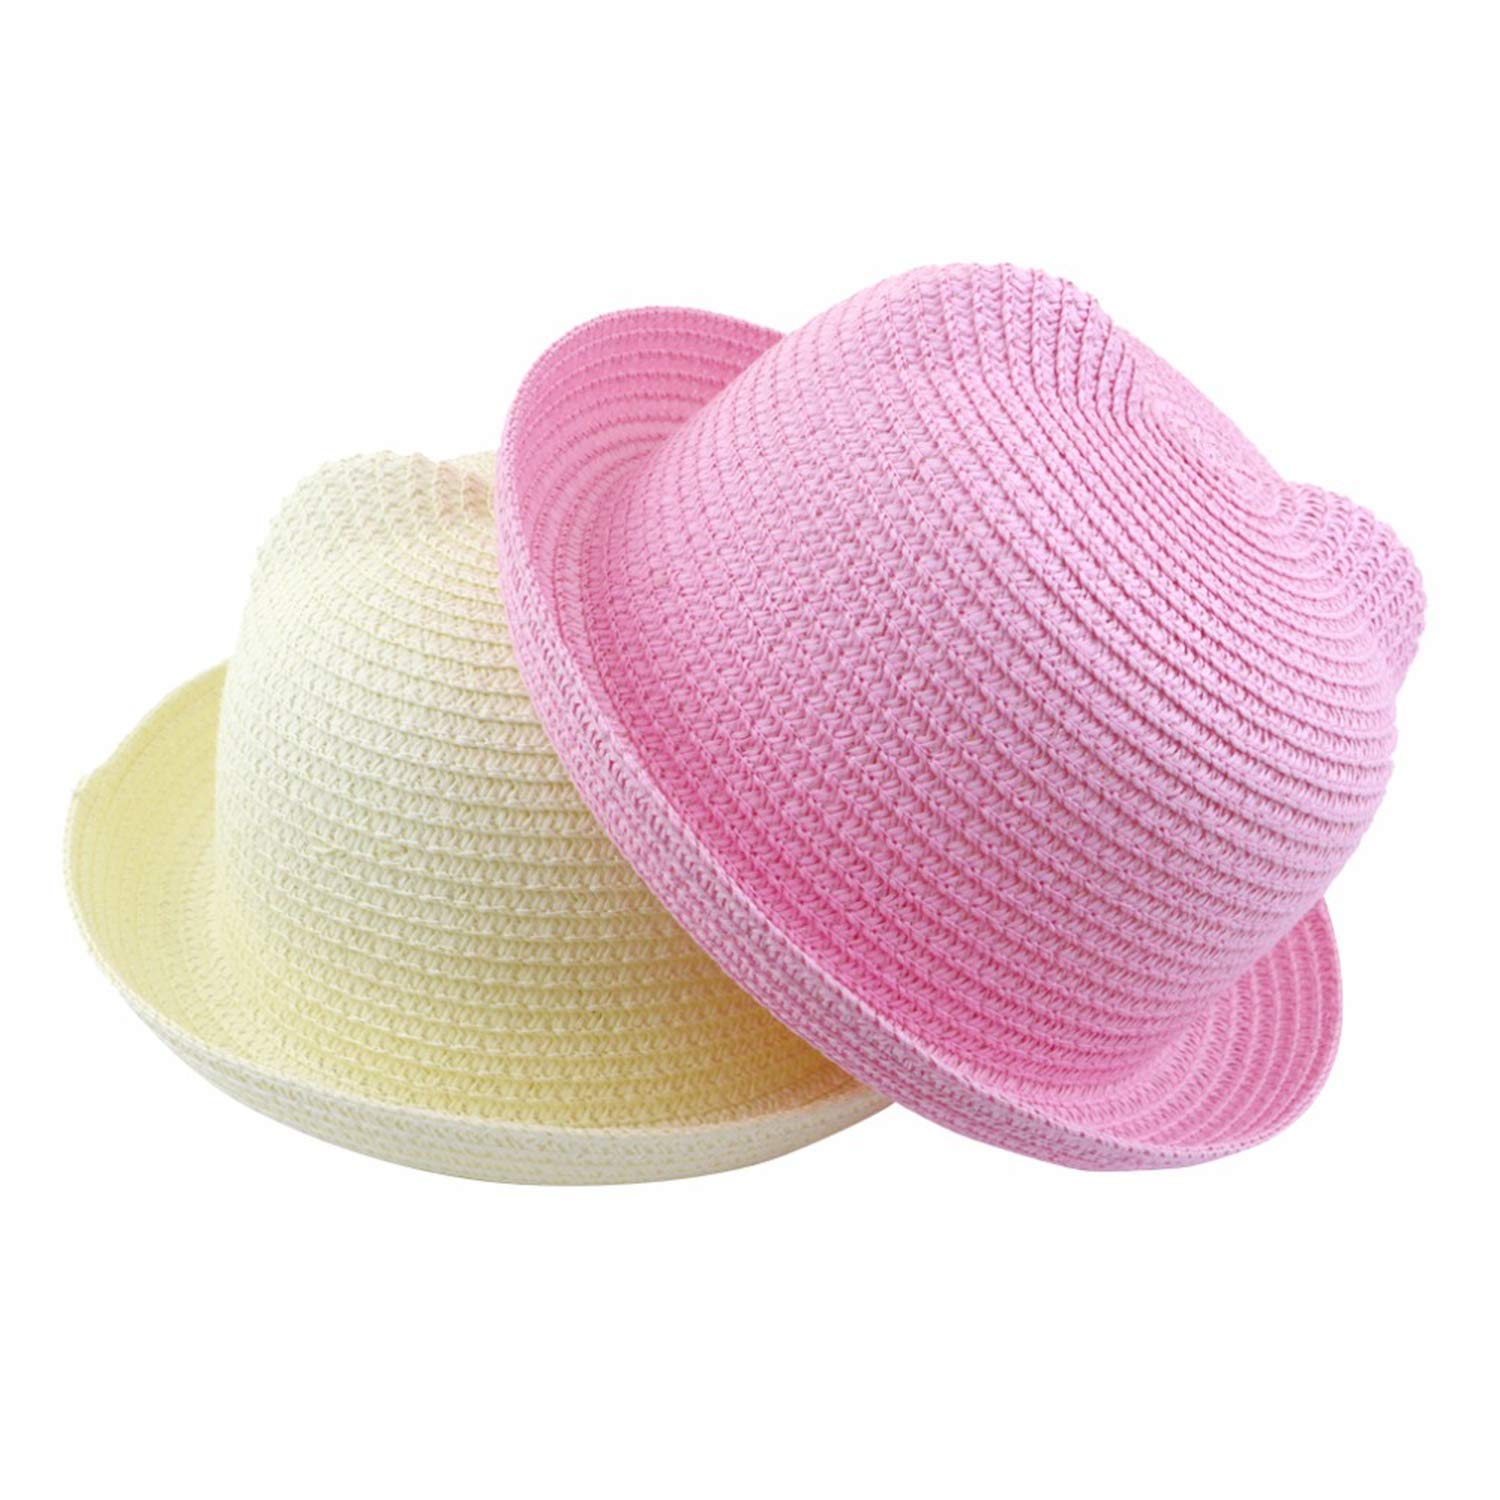 2018 Summer Baby Ear Decoration Lovely Children Character Solid Kid Floppy Panama Straw Hats Girls and Boys Sun Hat